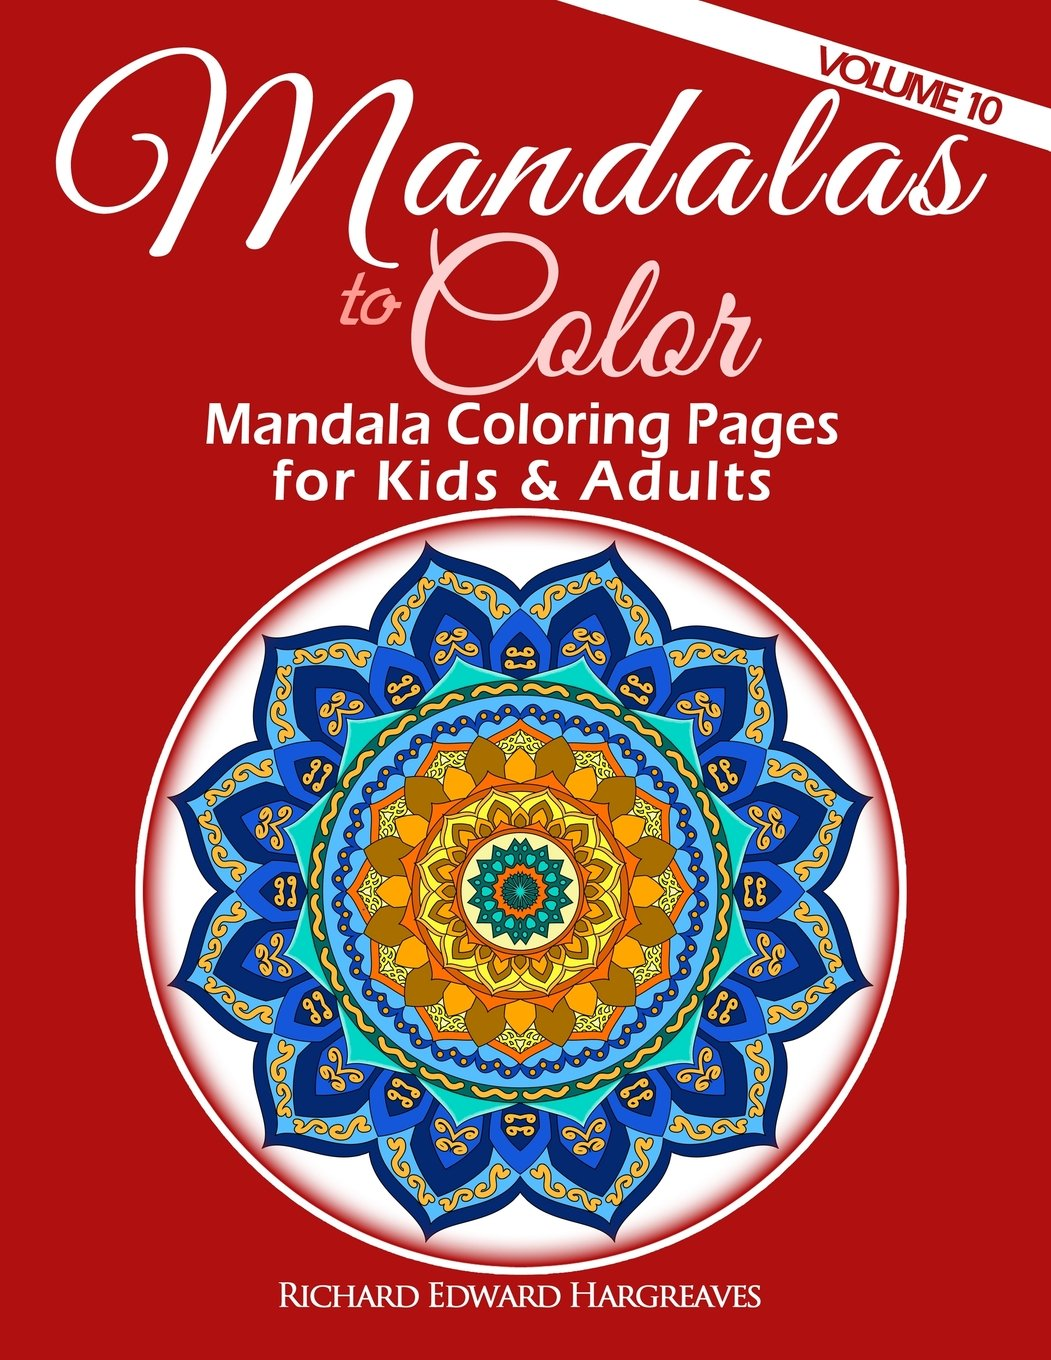 Amazon.com: 10: Mandalas to Color - Mandala Coloring Pages for Kids ...